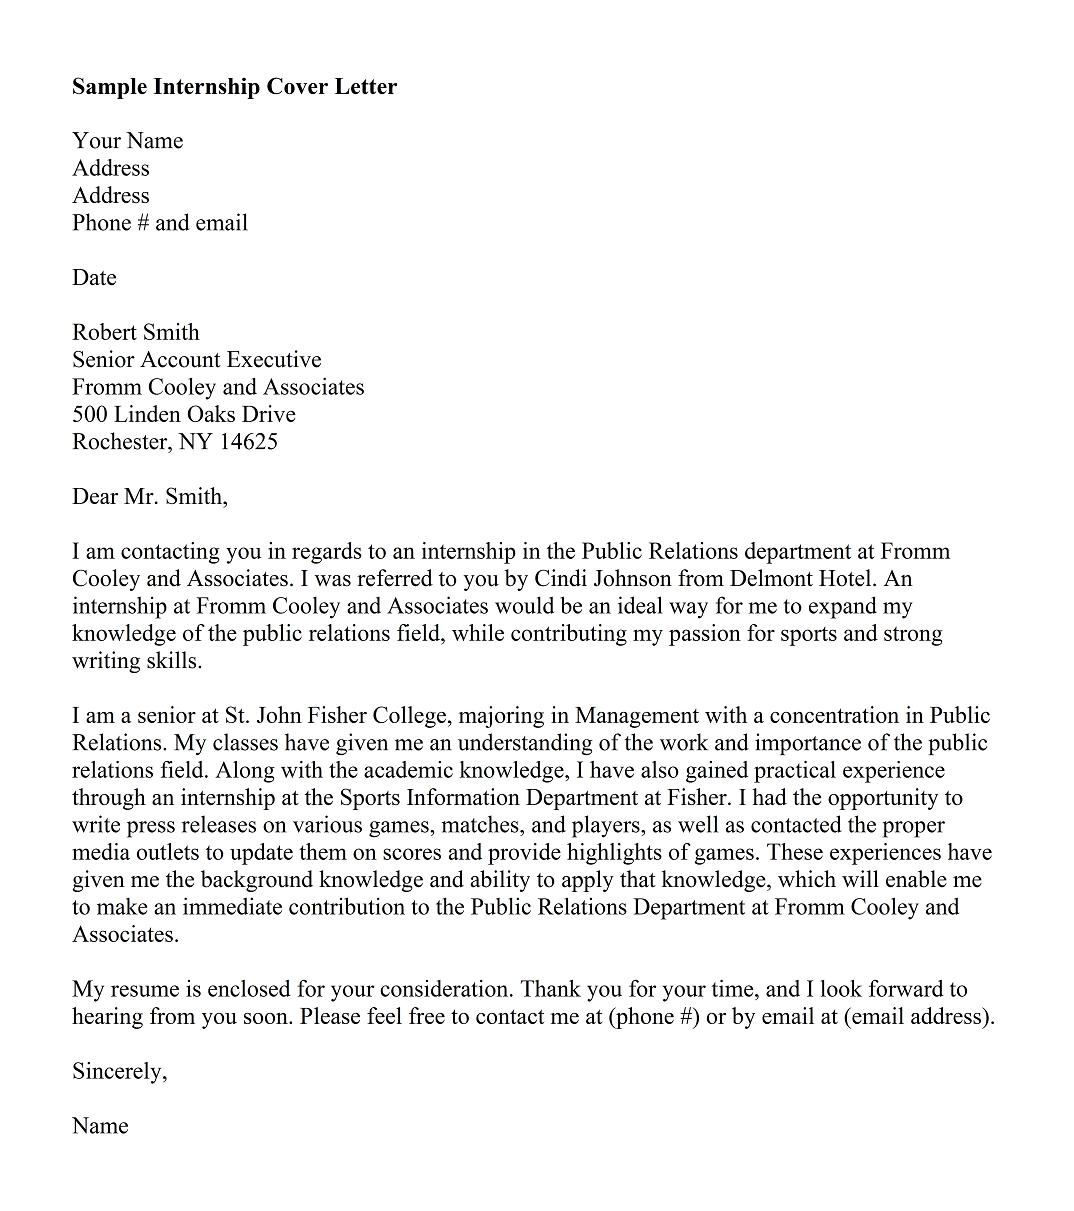 Best Way To Write Cover Letter Top Writing Essay